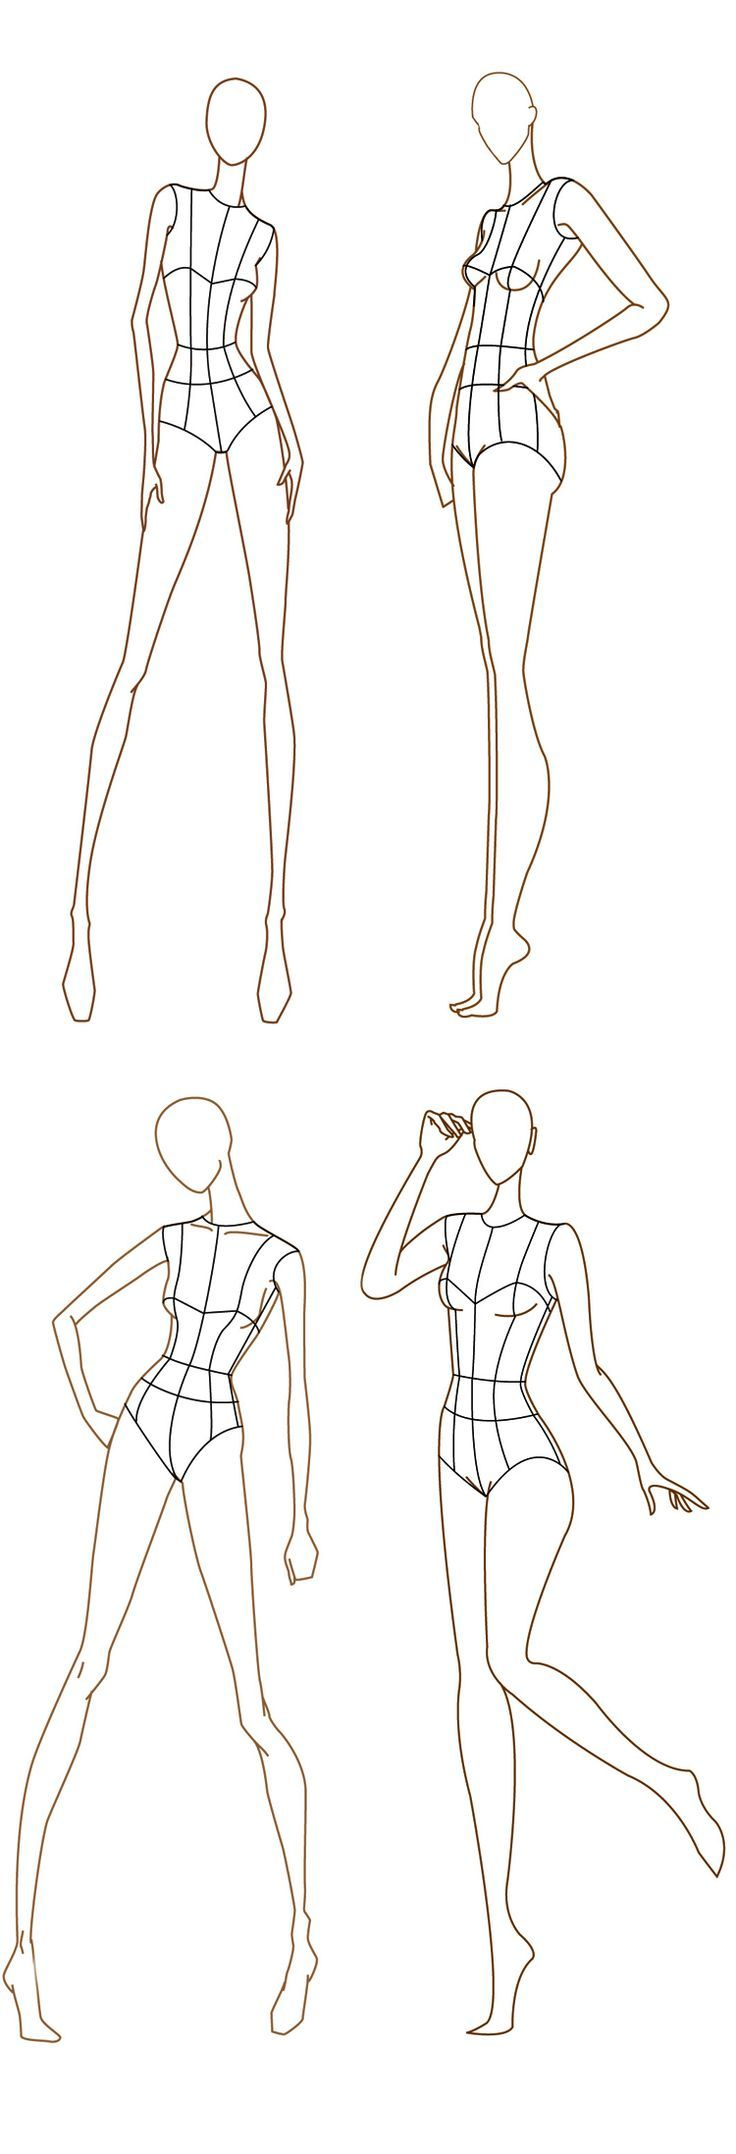 awesome Free download - Fashion design templates. more here www.designersnexu...... by http://www.redfashiontrends.us/fashion-sketches/free-download-fashion-design-templates-more-here-www-designersnexu/